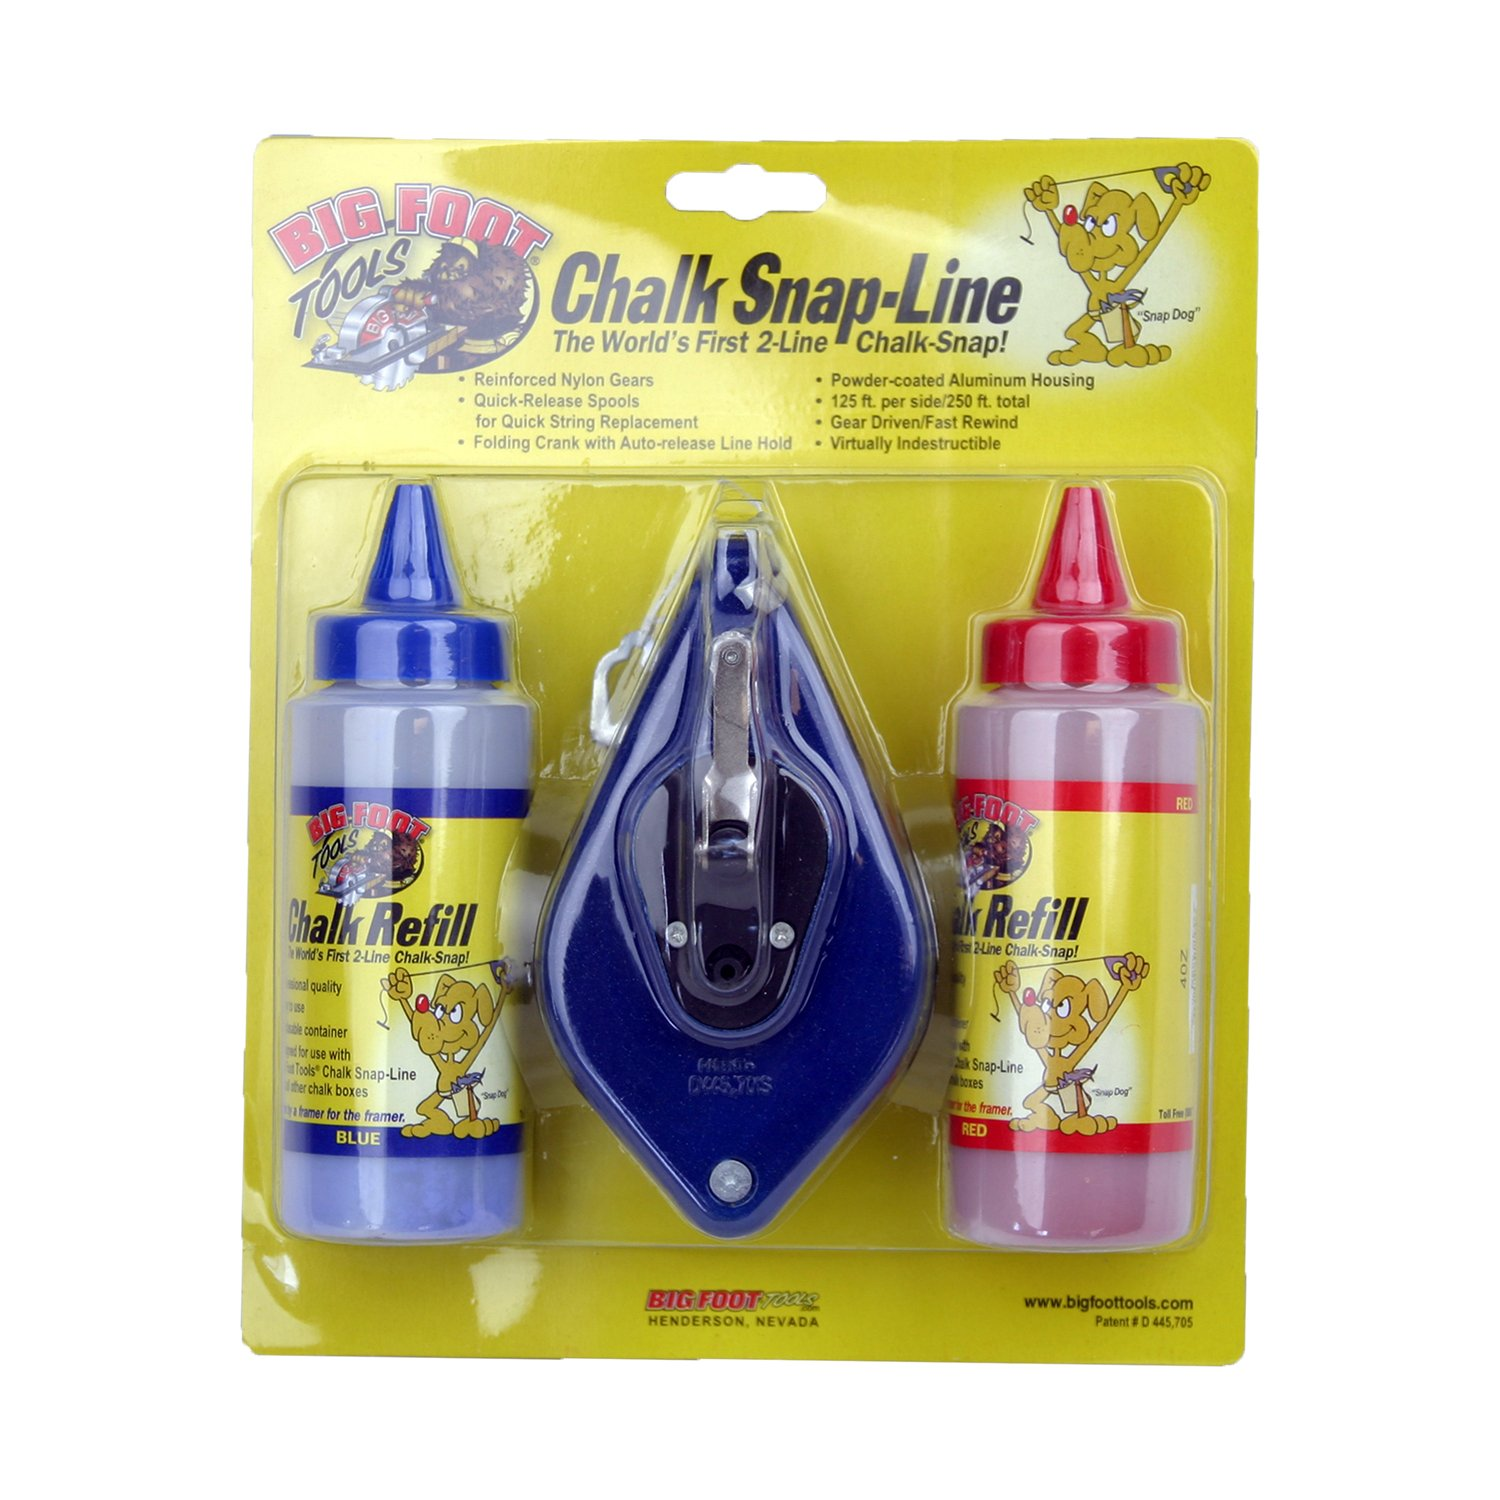 Big Foot LA-DCBWC Dual Line Chalk Box with Chalk